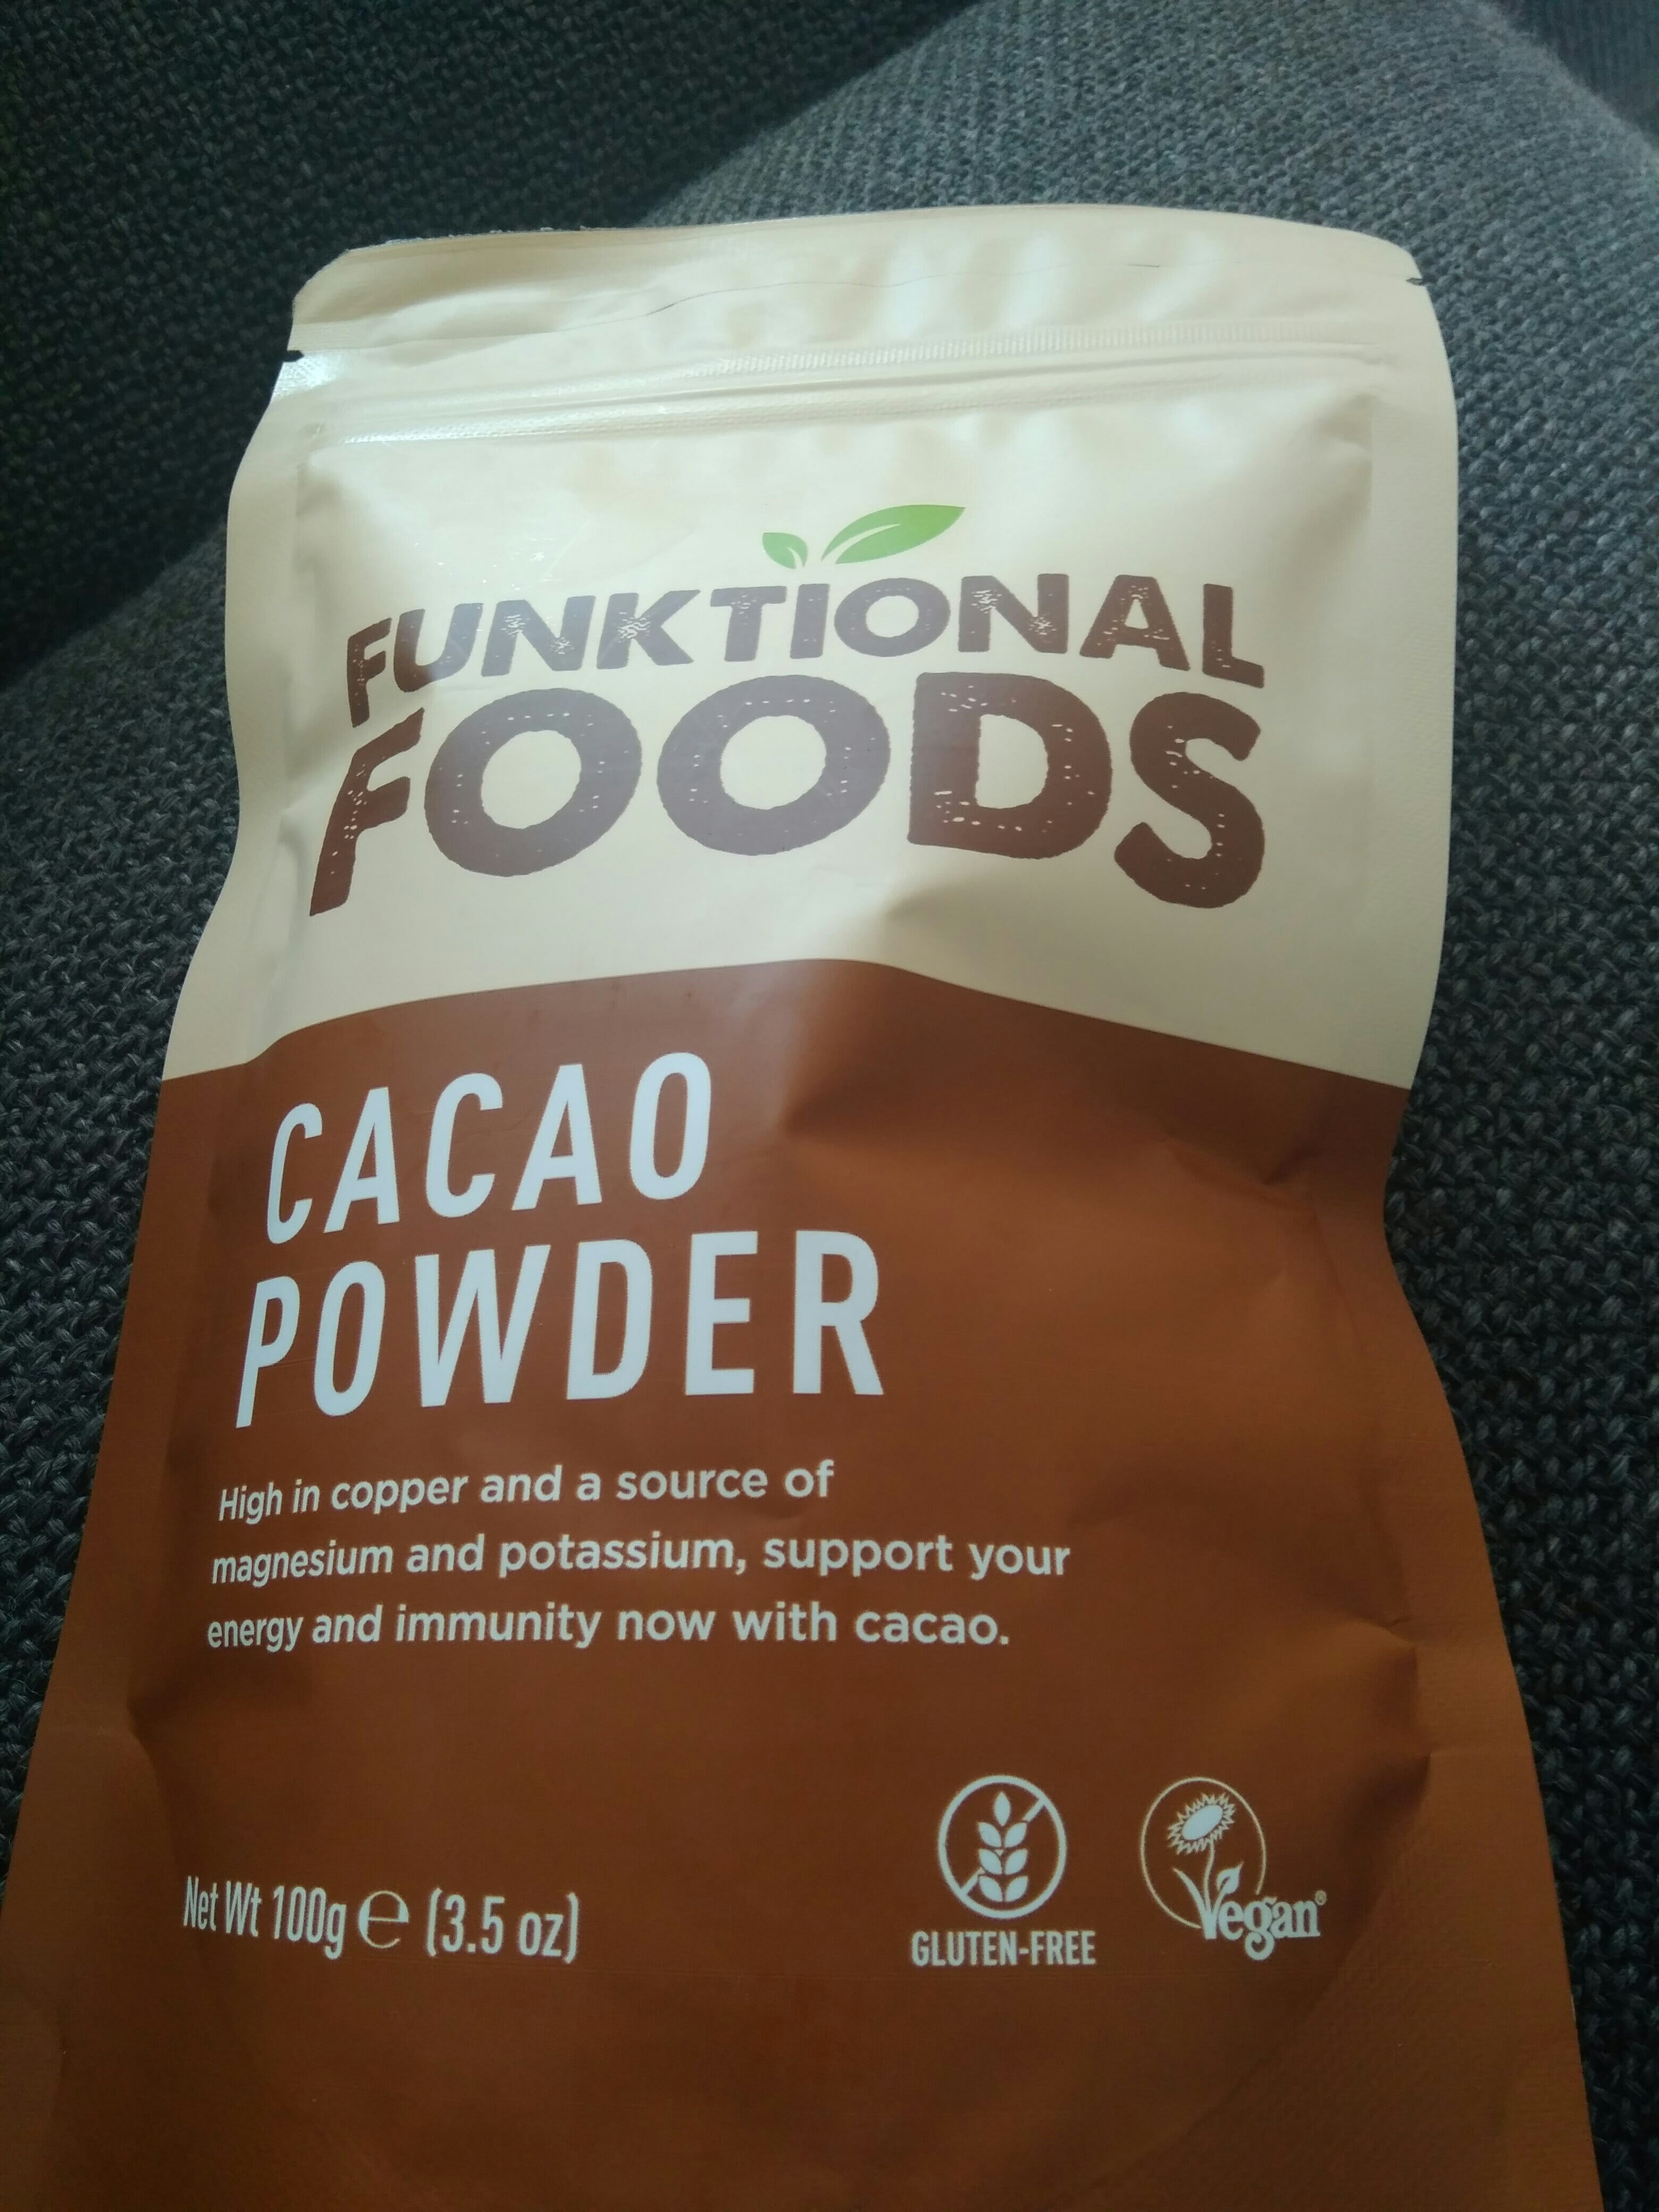 Cacao Powder - Product